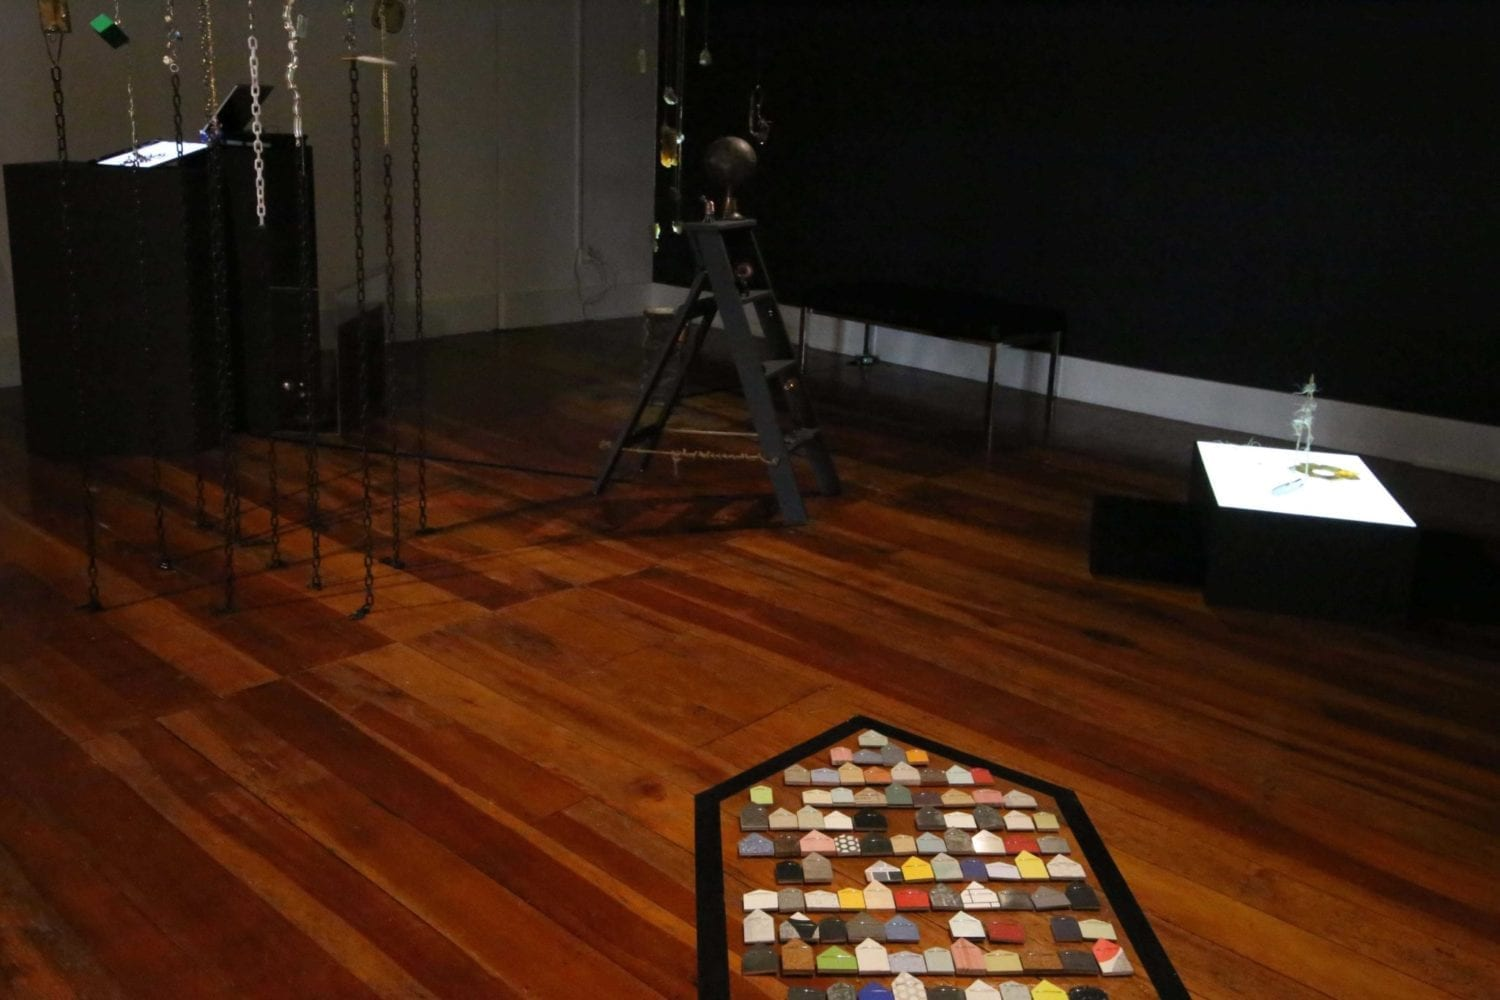 Overview, dark room1